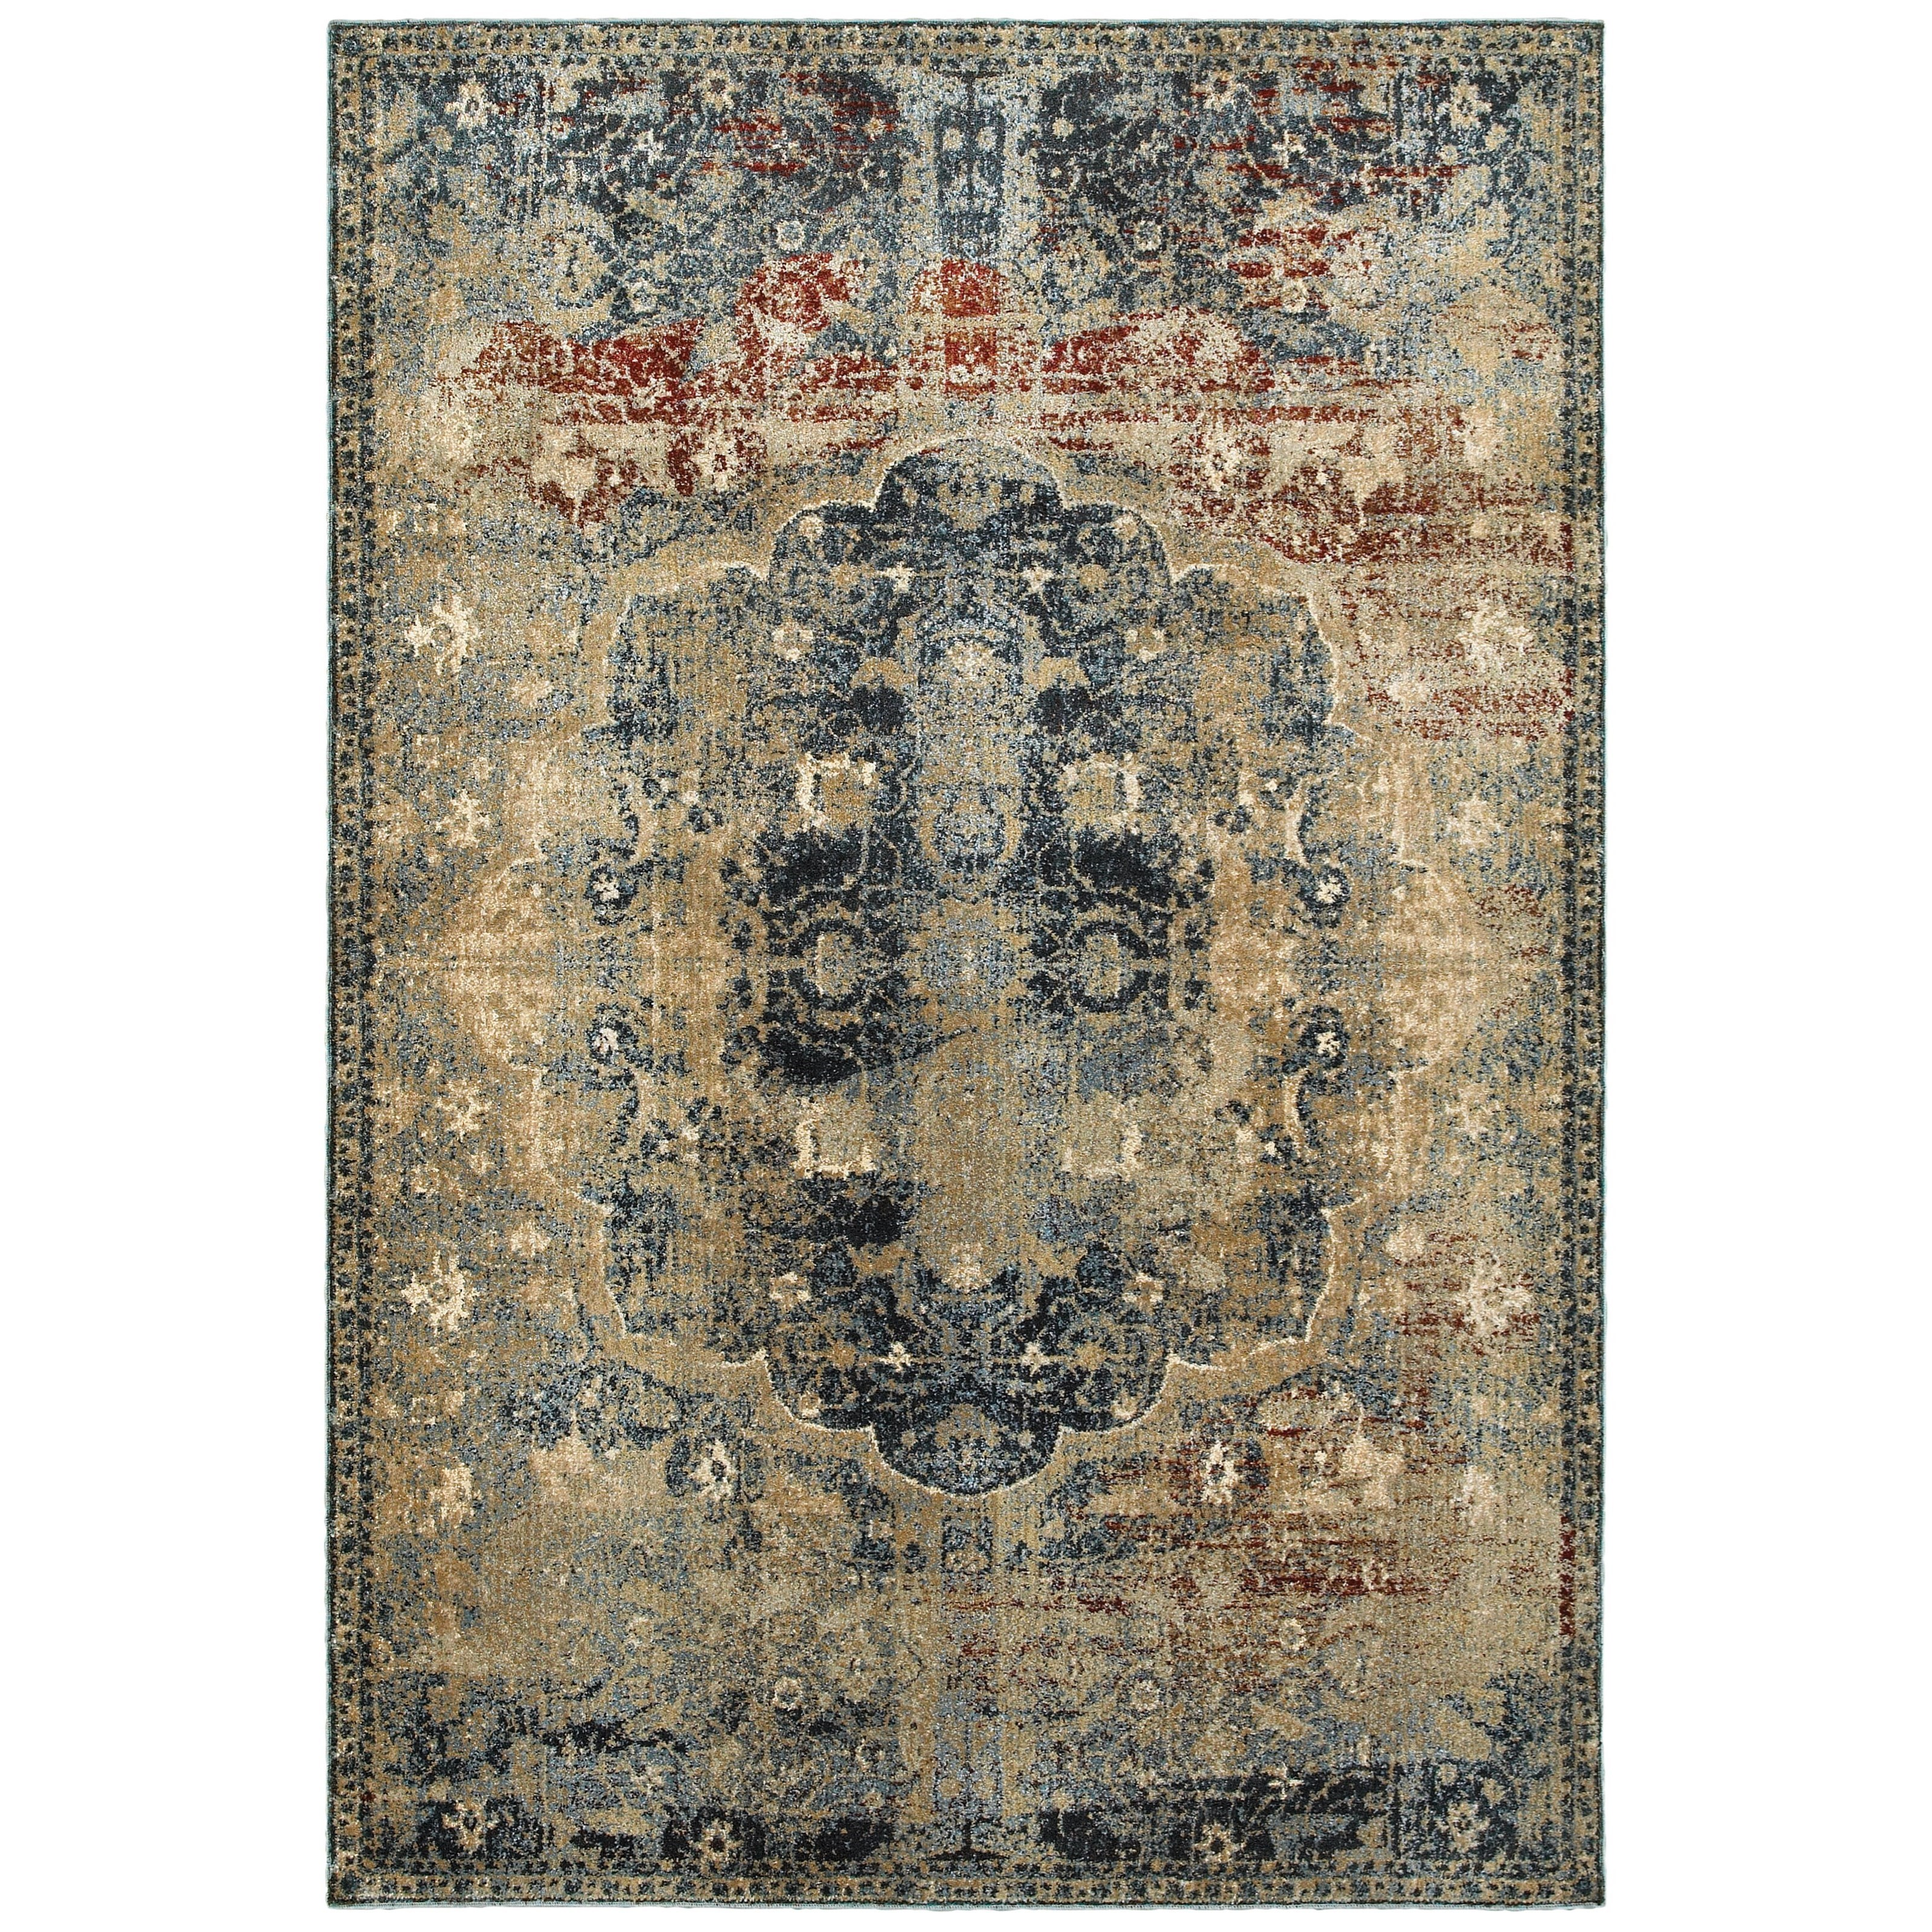 "Empire 9'10"" X 12'10"" Traditional Gold/ Blue Rectan by Oriental Weavers at Rooms for Less"